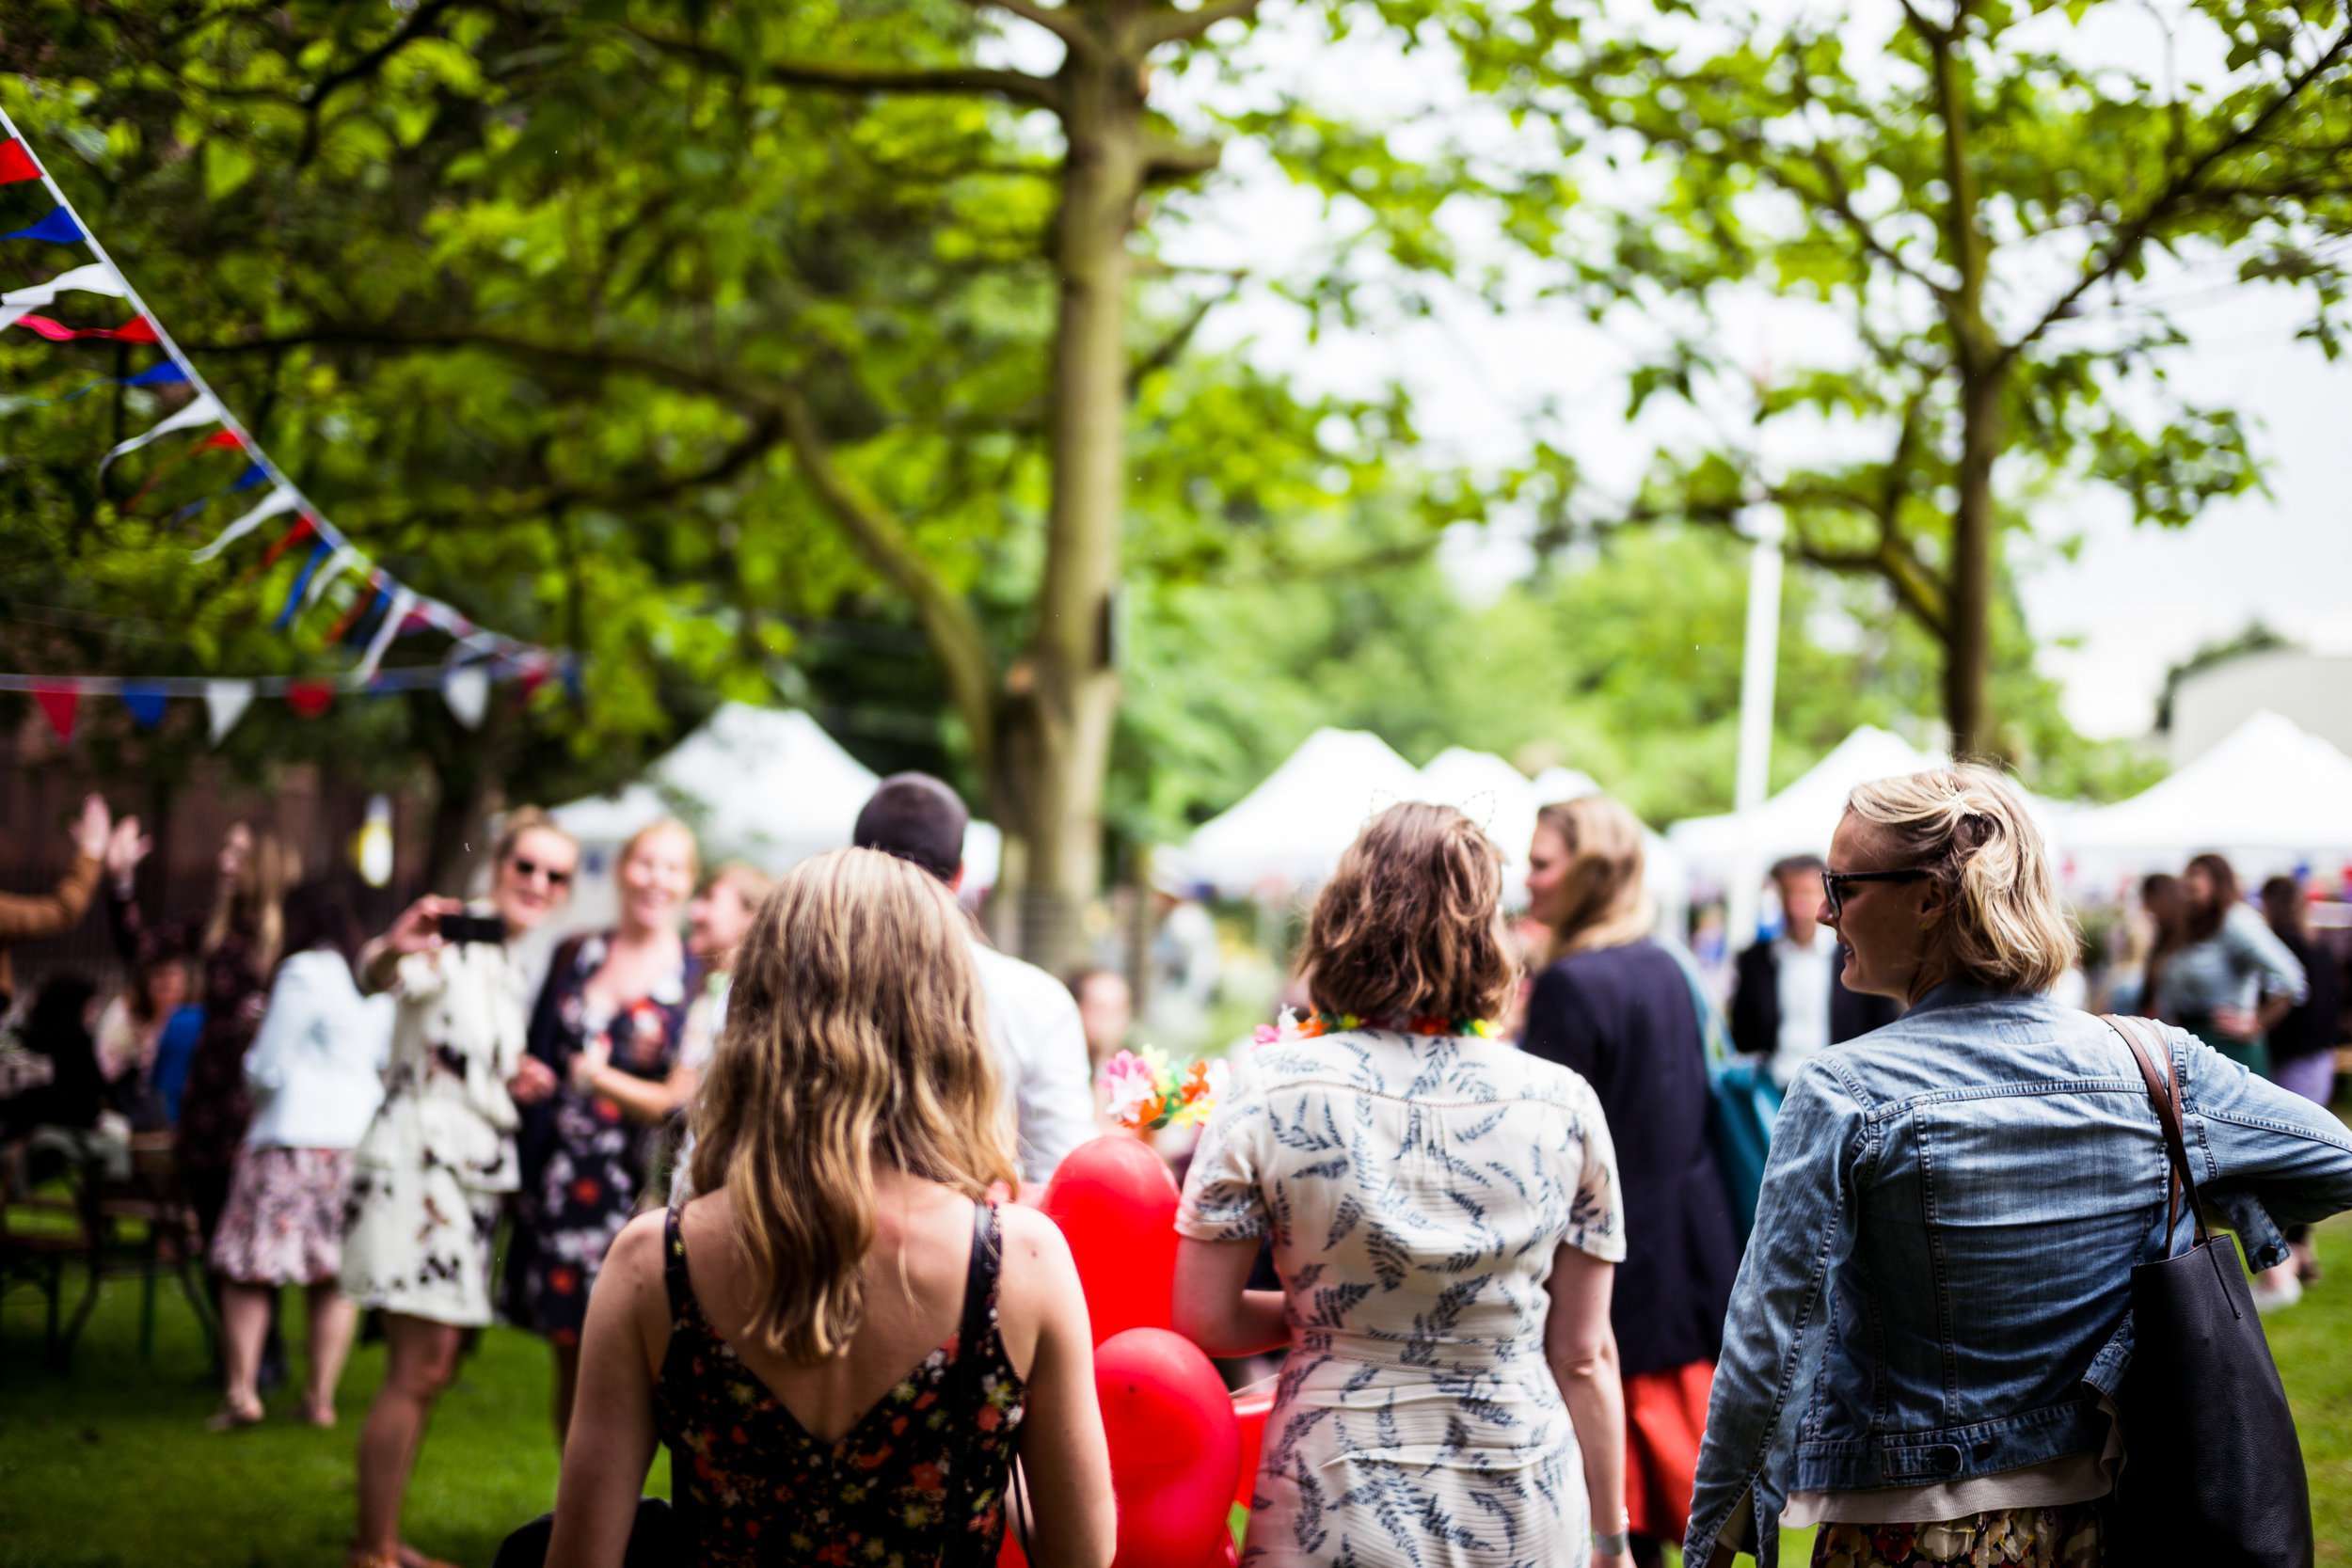 B&H Summer brunch party in a park in Clerkenwell